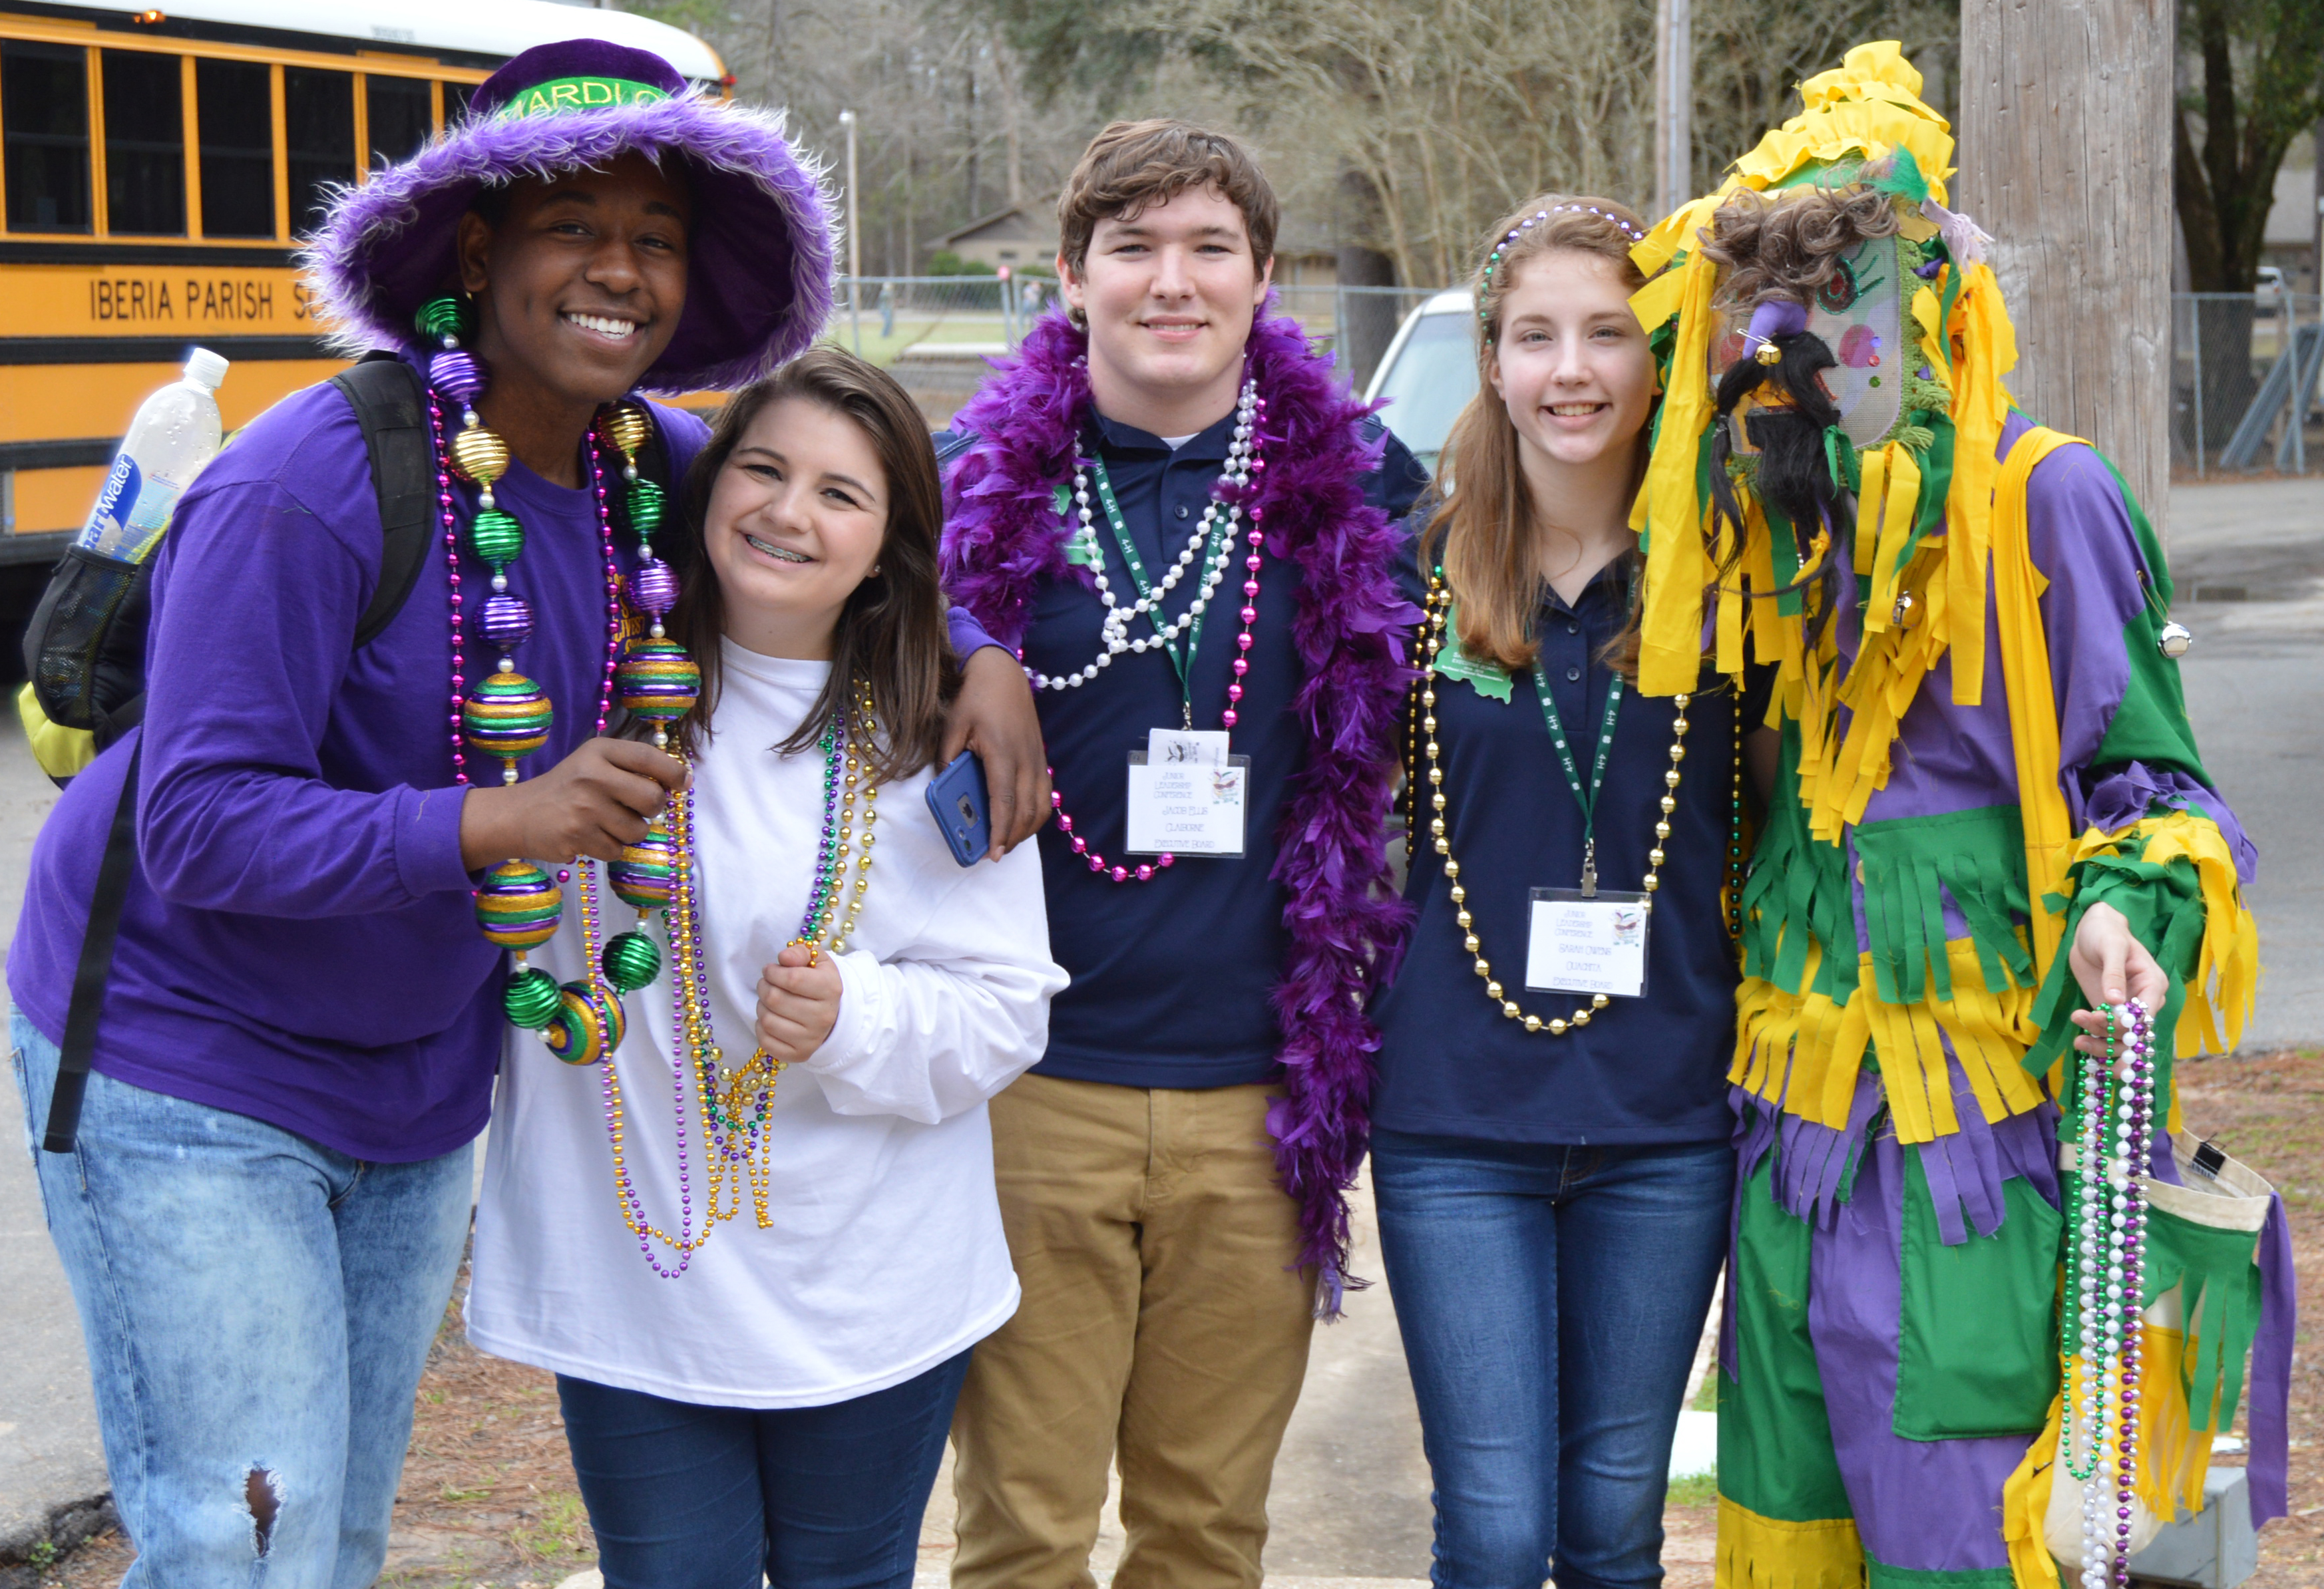 4-H leadership conference brings youth together